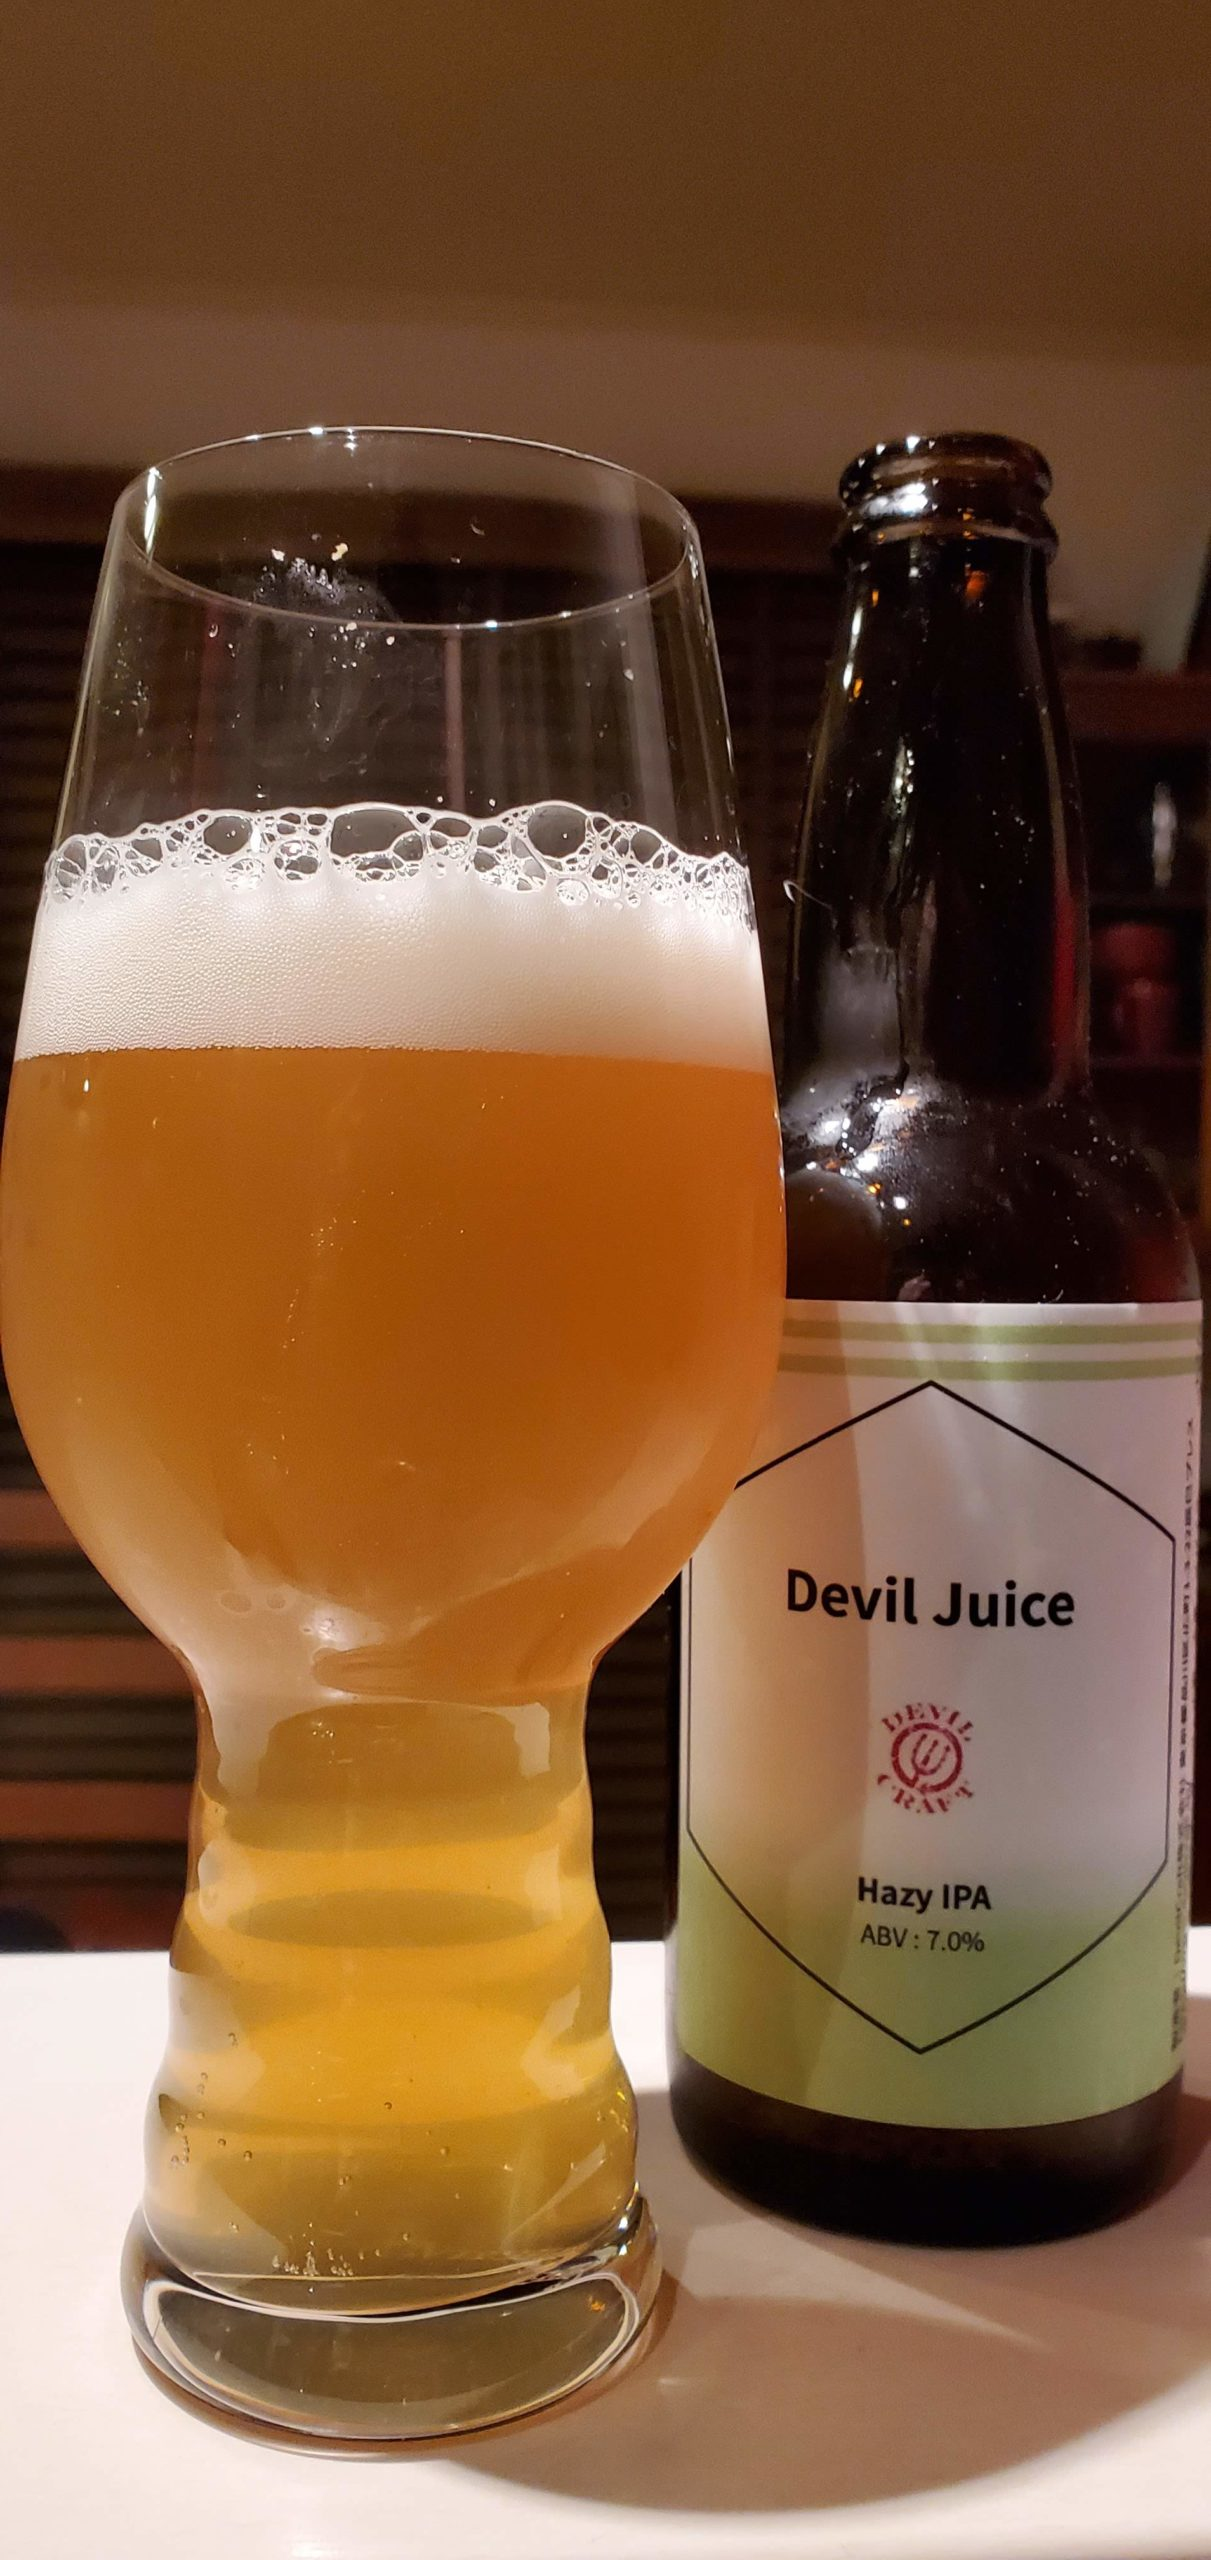 Devilcraft Devil Juice